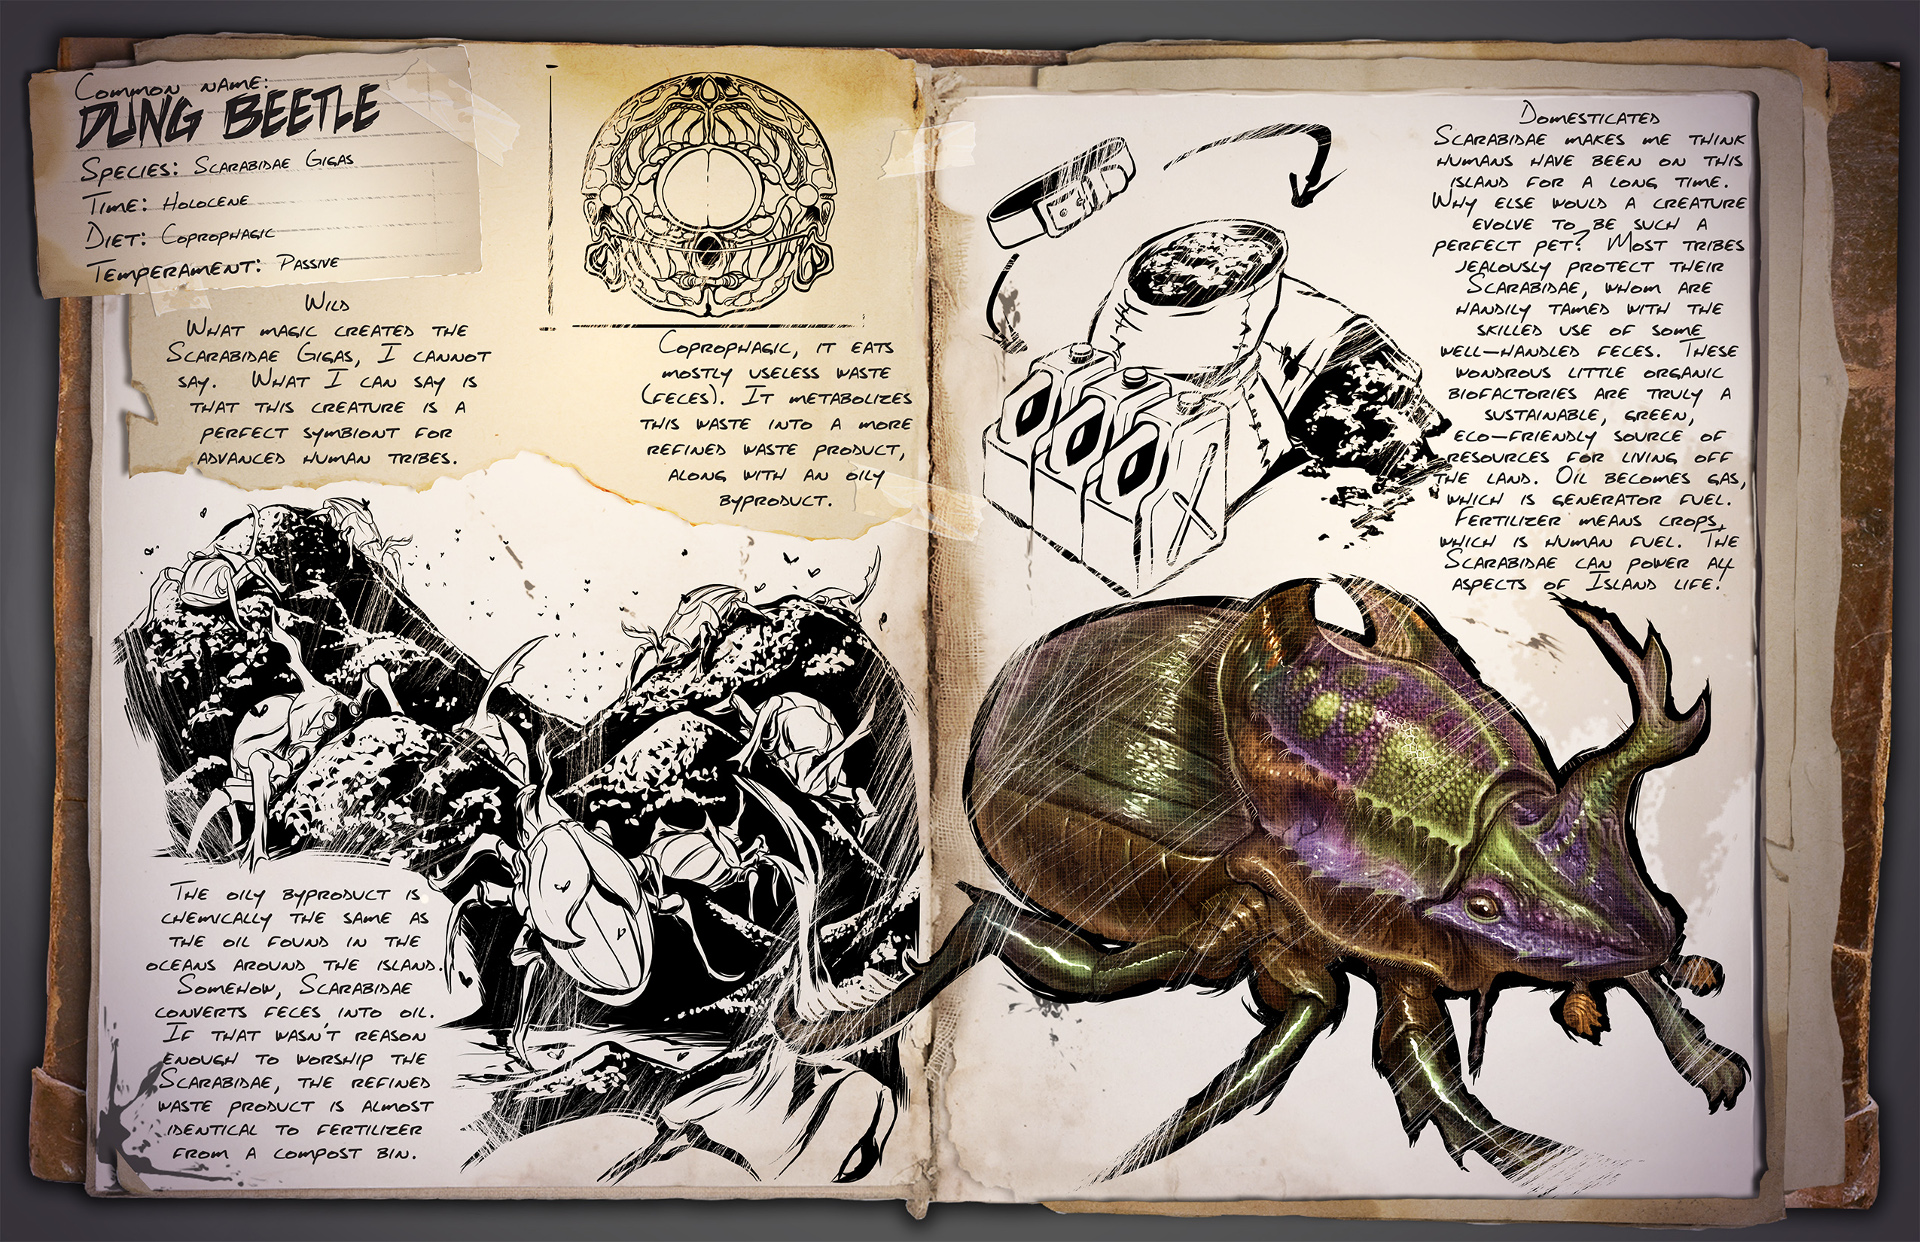 Dino Dossier: Dungbeetle